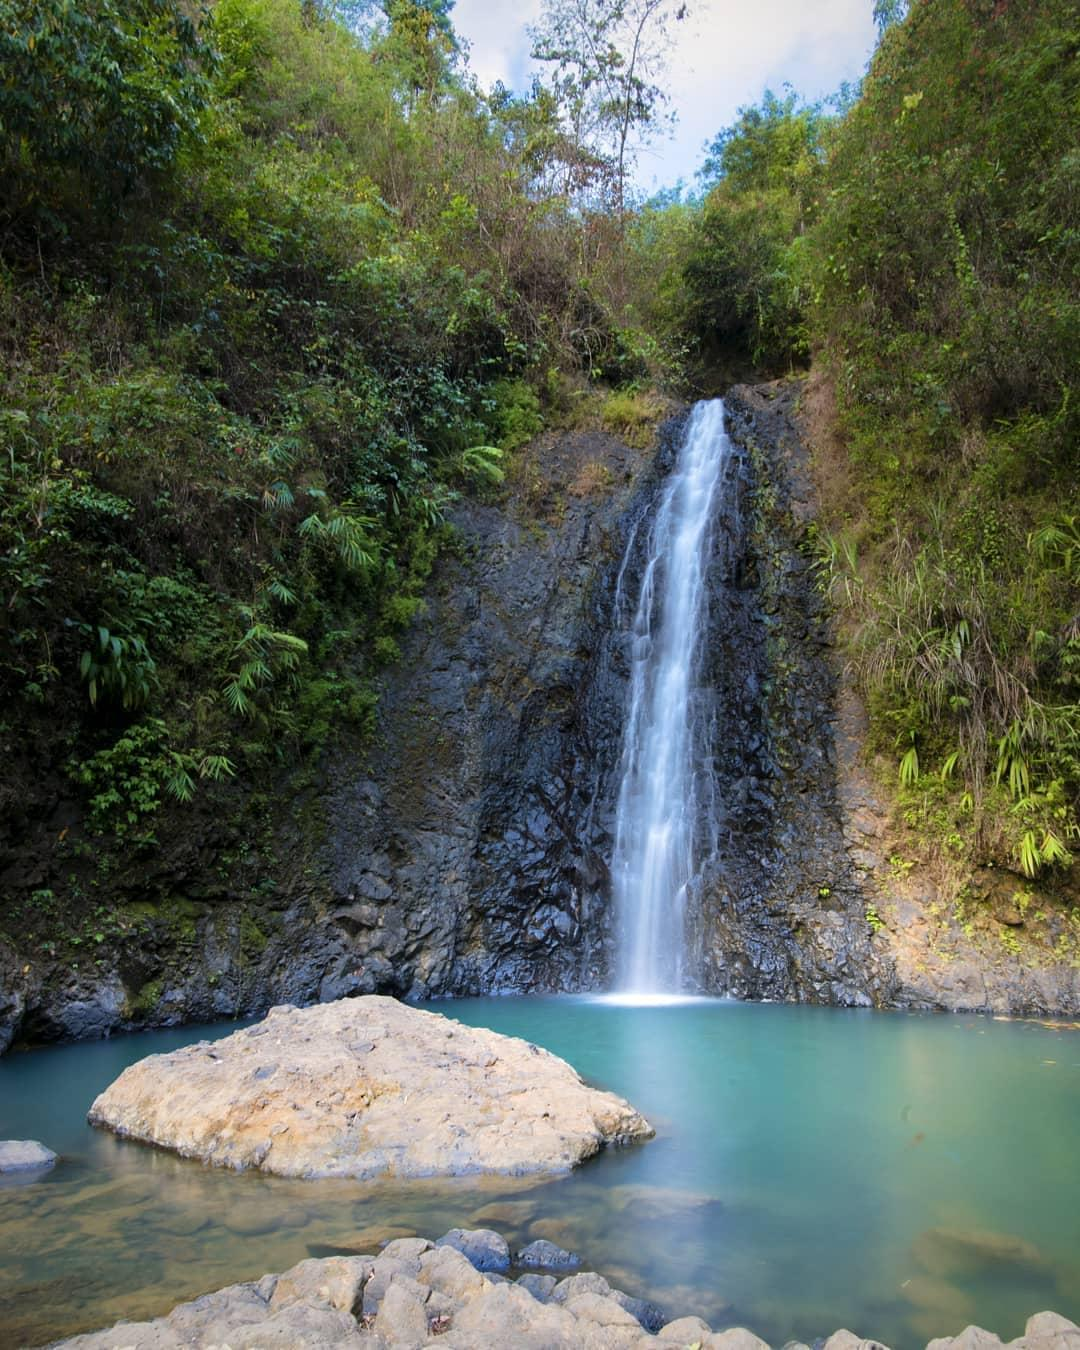 Gemawang Waterfall